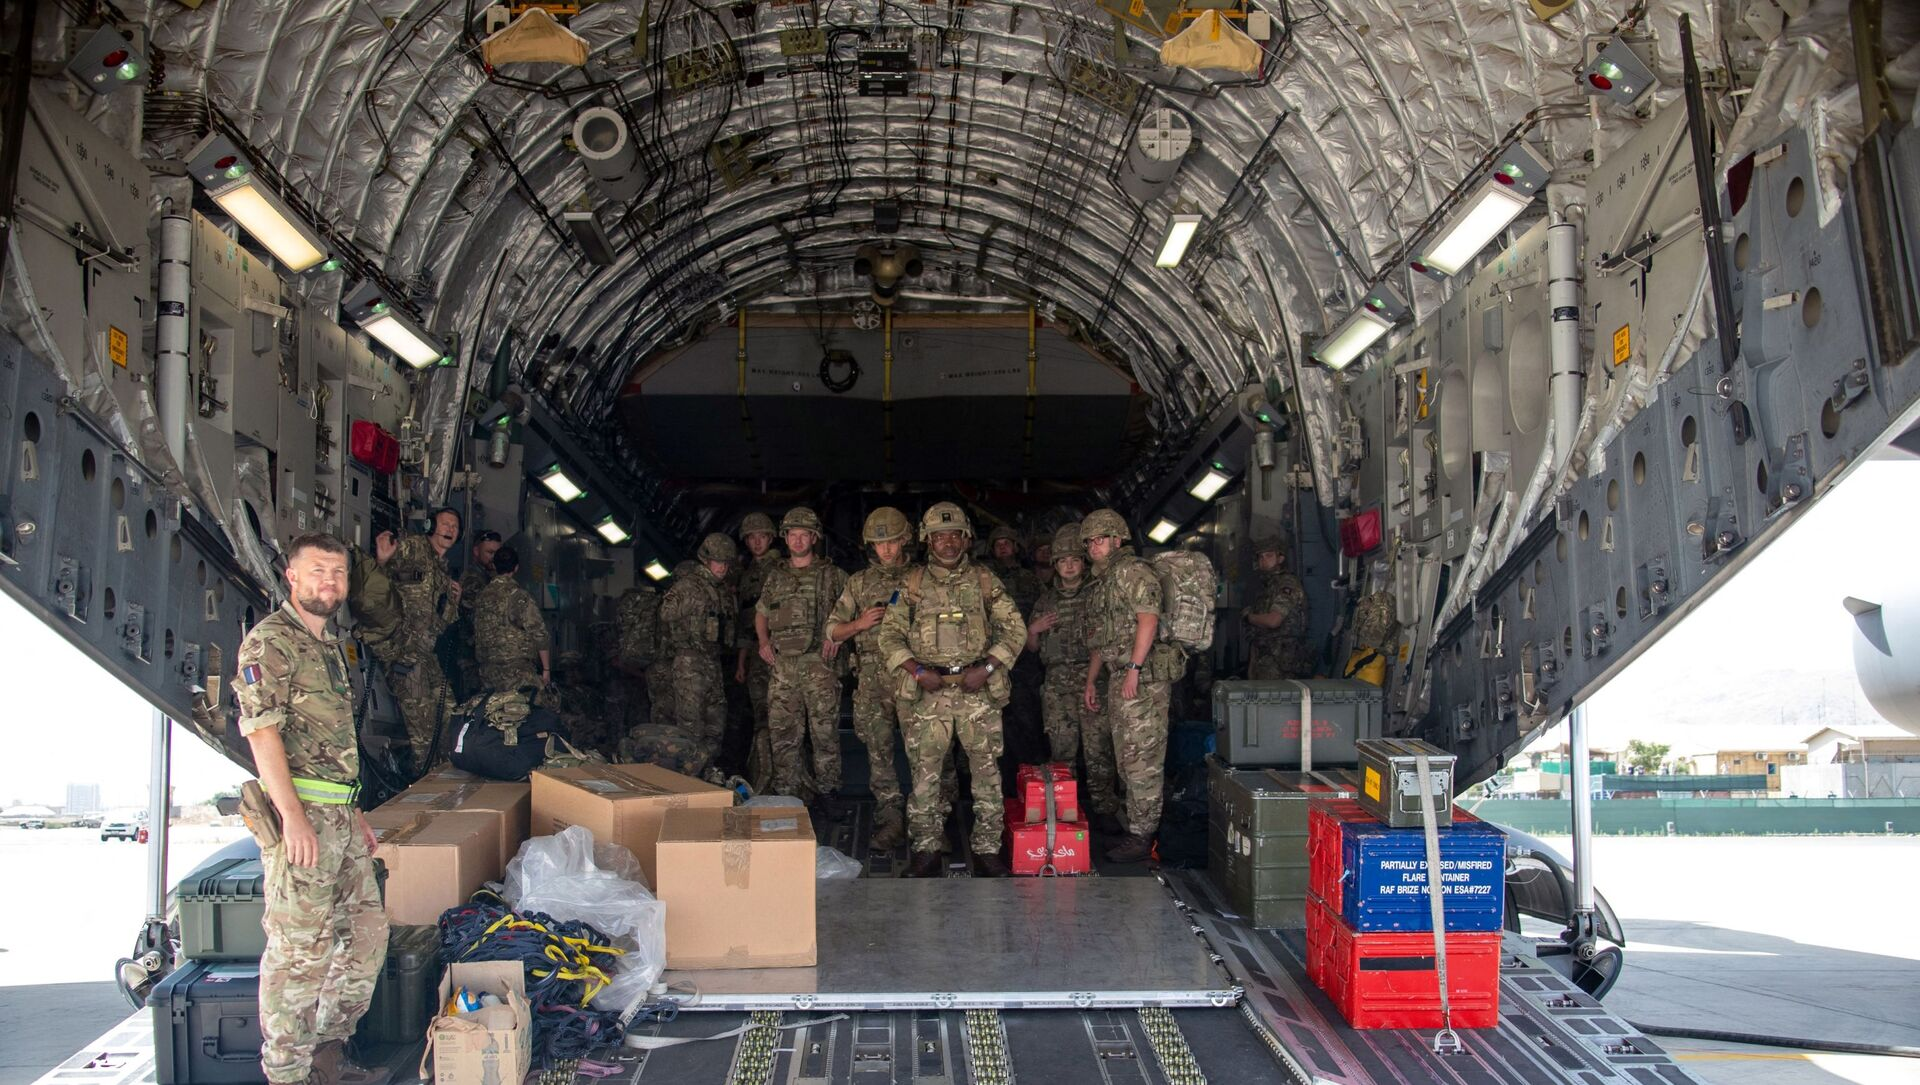 A handout picture taken and released by the British Ministry of Defence (MOD) on August 15, 2021 shows members of the British Army, from 16 Air Assault Brigade, as they disembark from an RAF Voyager aircraft after landing in Kabul, Afghanistan, to assist in evacuating British nationals and entitled persons as part of Operation PITTING - Sputnik International, 1920, 17.08.2021